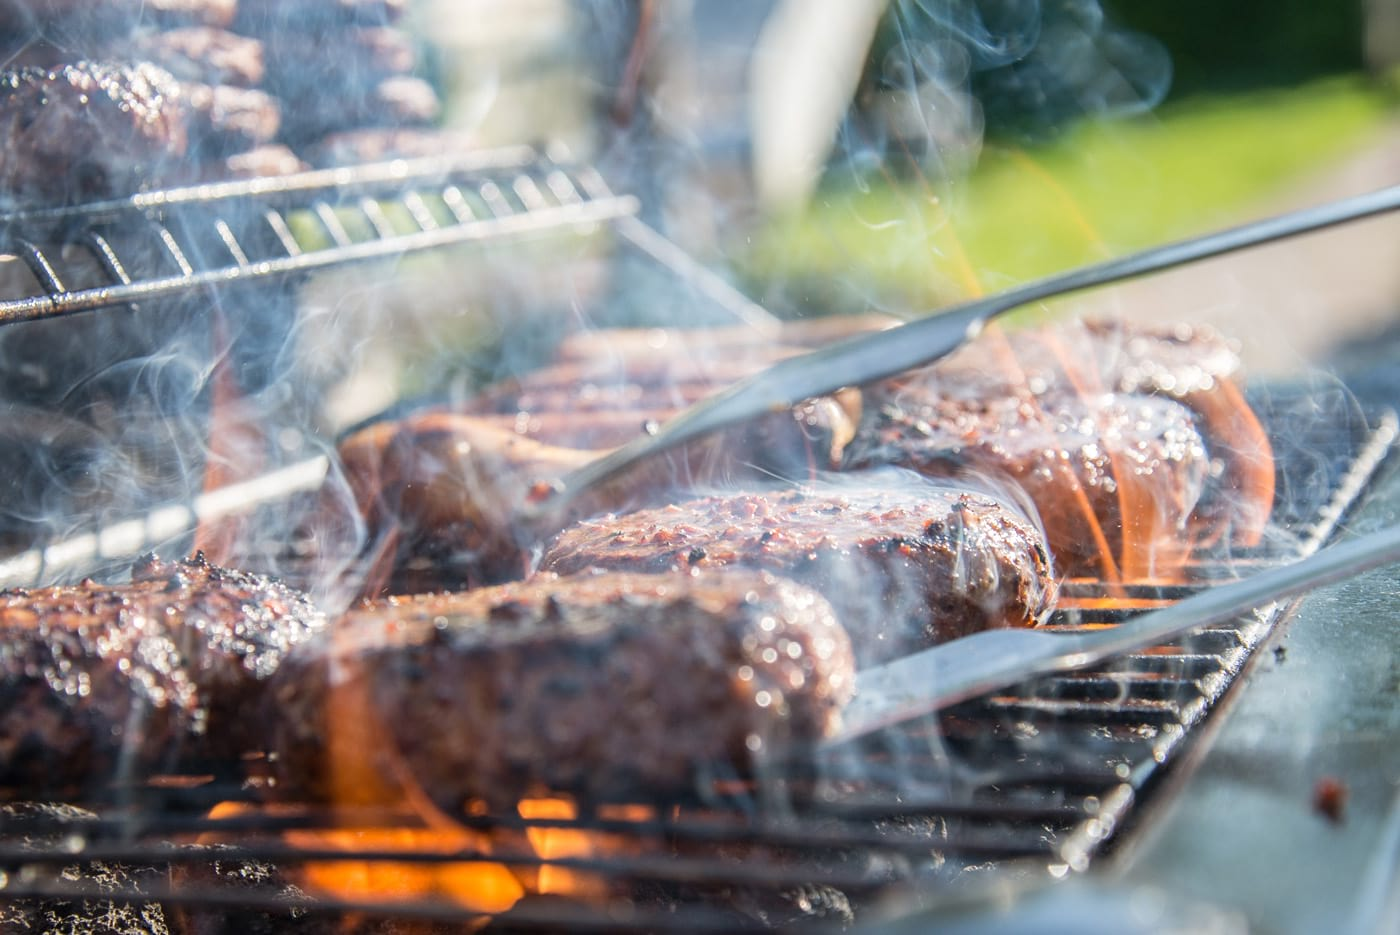 With Fire How to Plan a Corporate Summer BBQ with a Difference - Tailormade BBQ catering in Reigate, Surrey